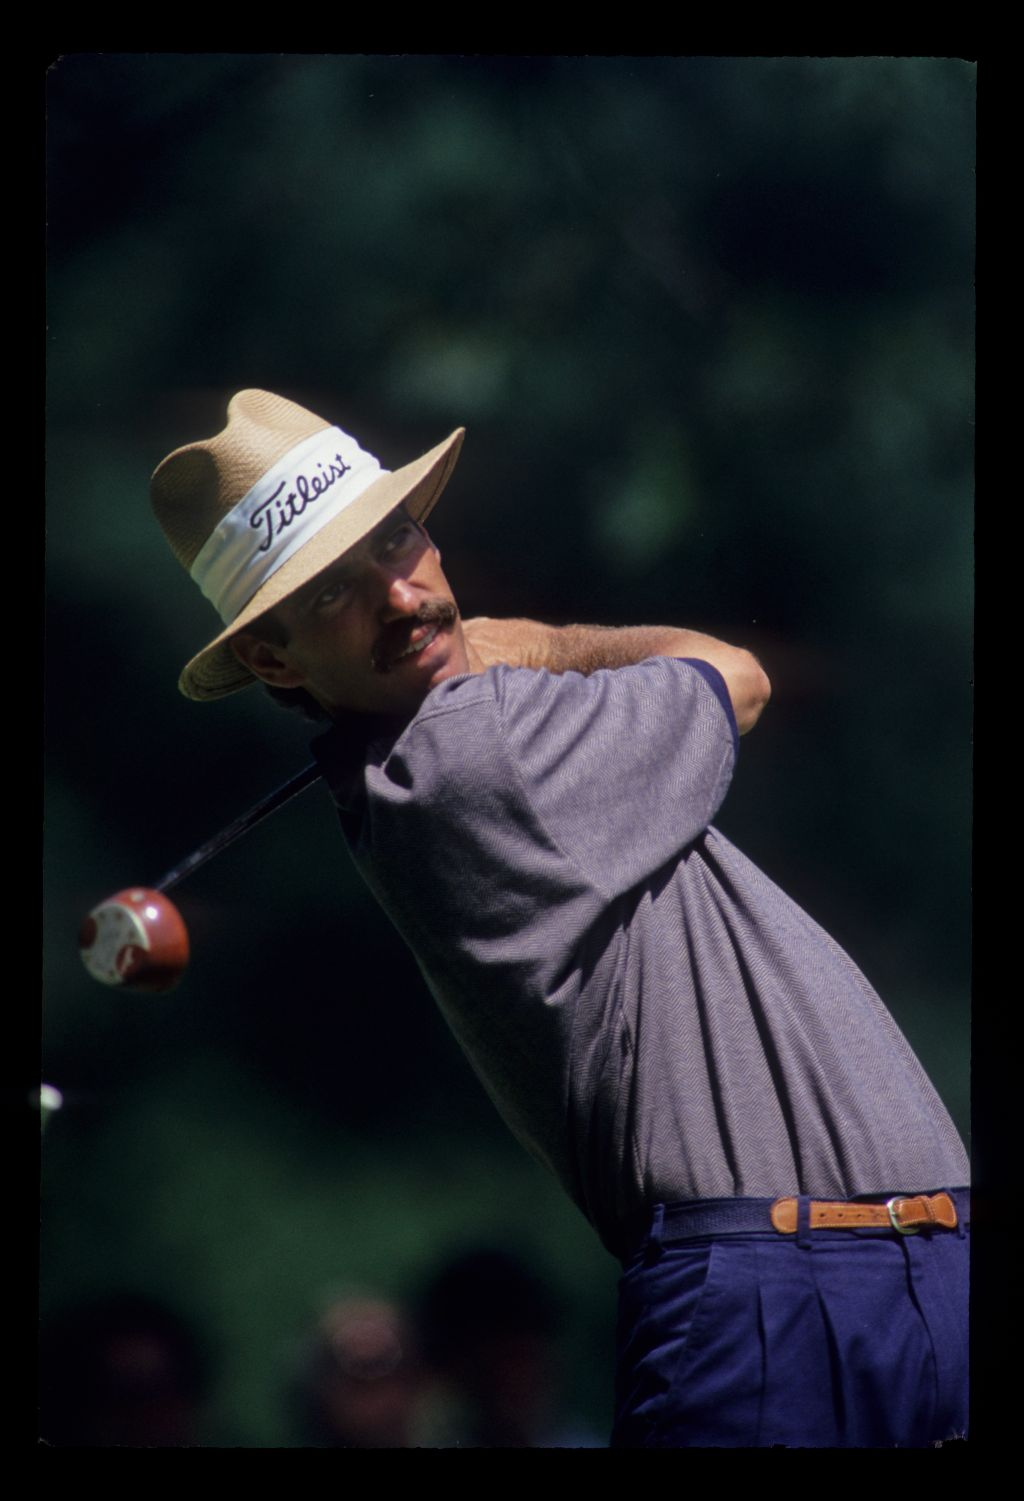 Corey Pavin following through during the 1993 US Open